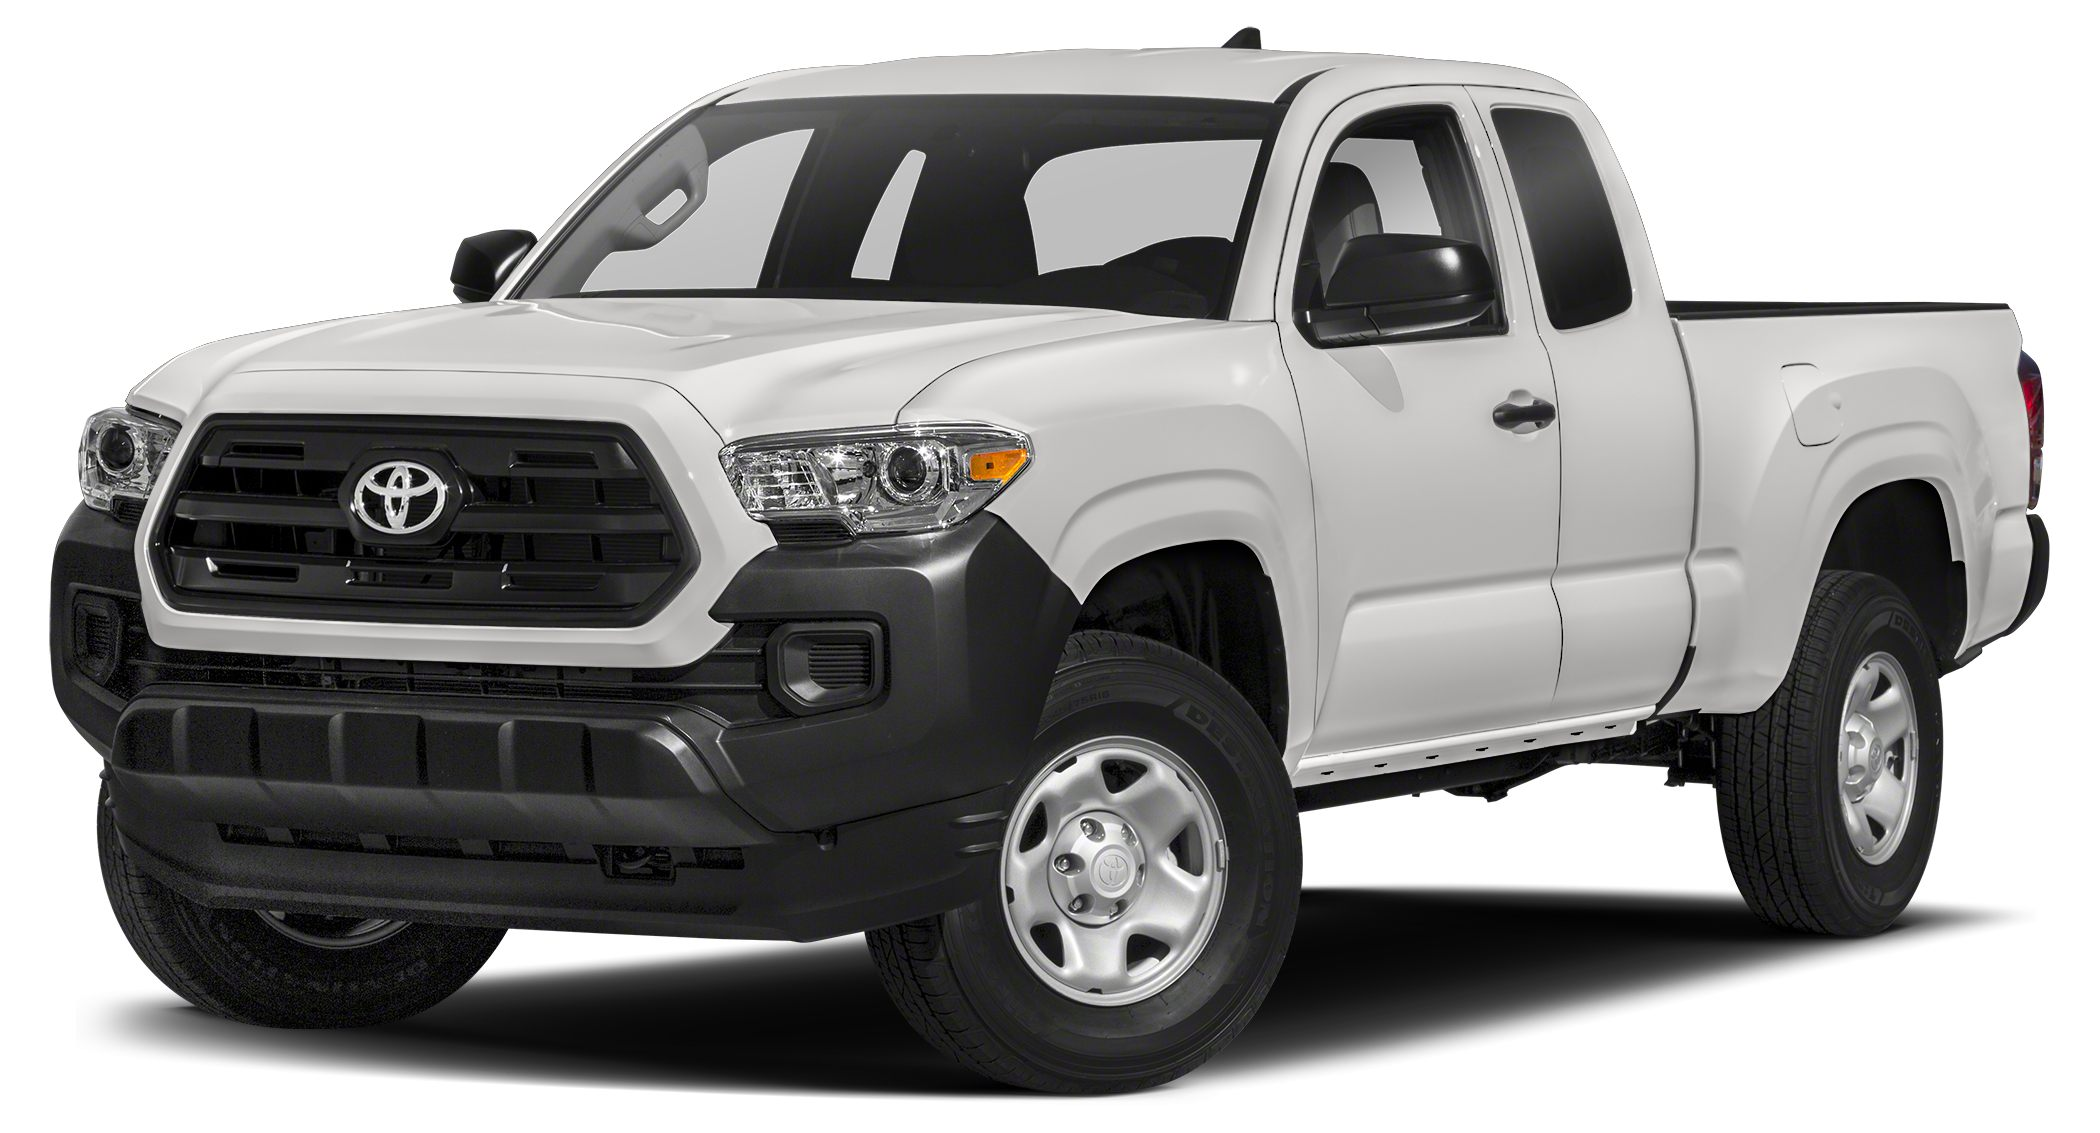 2016 Toyota Tacoma SR Introducing the 2016 Toyota Tacoma There is no mistaking this truck for any